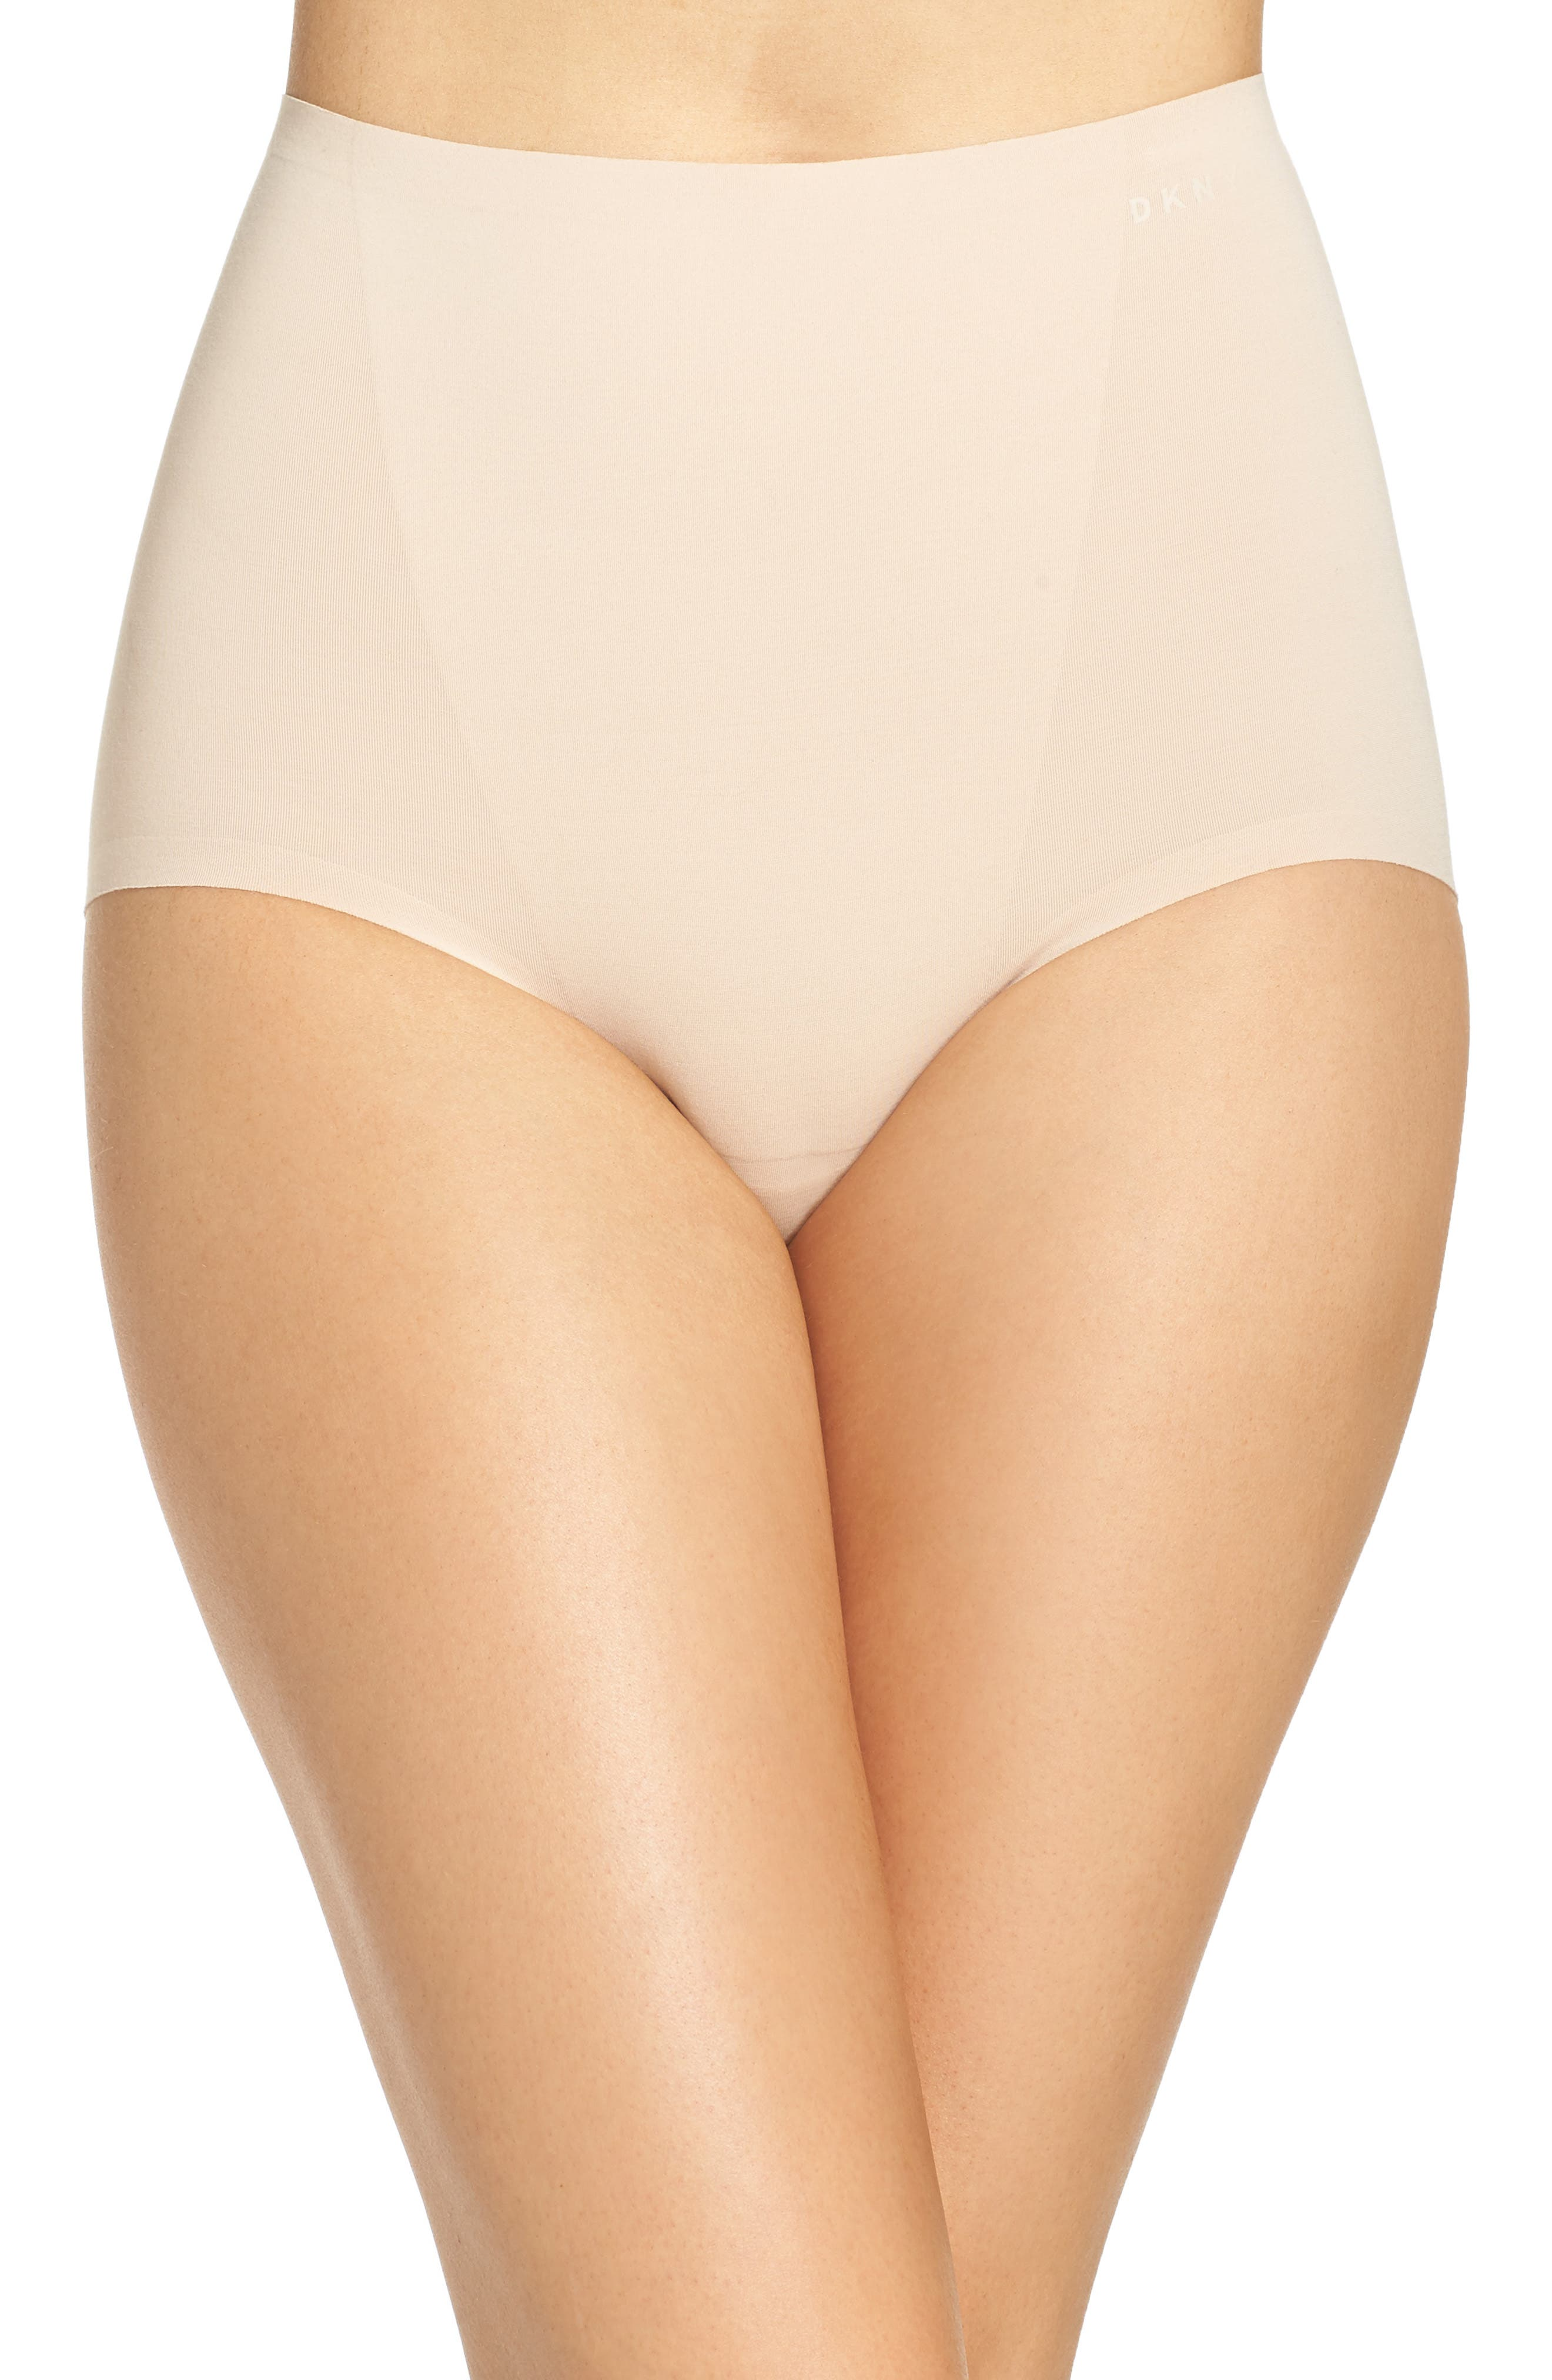 Alternate Image 1 Selected - DKNY Smoothing Briefs